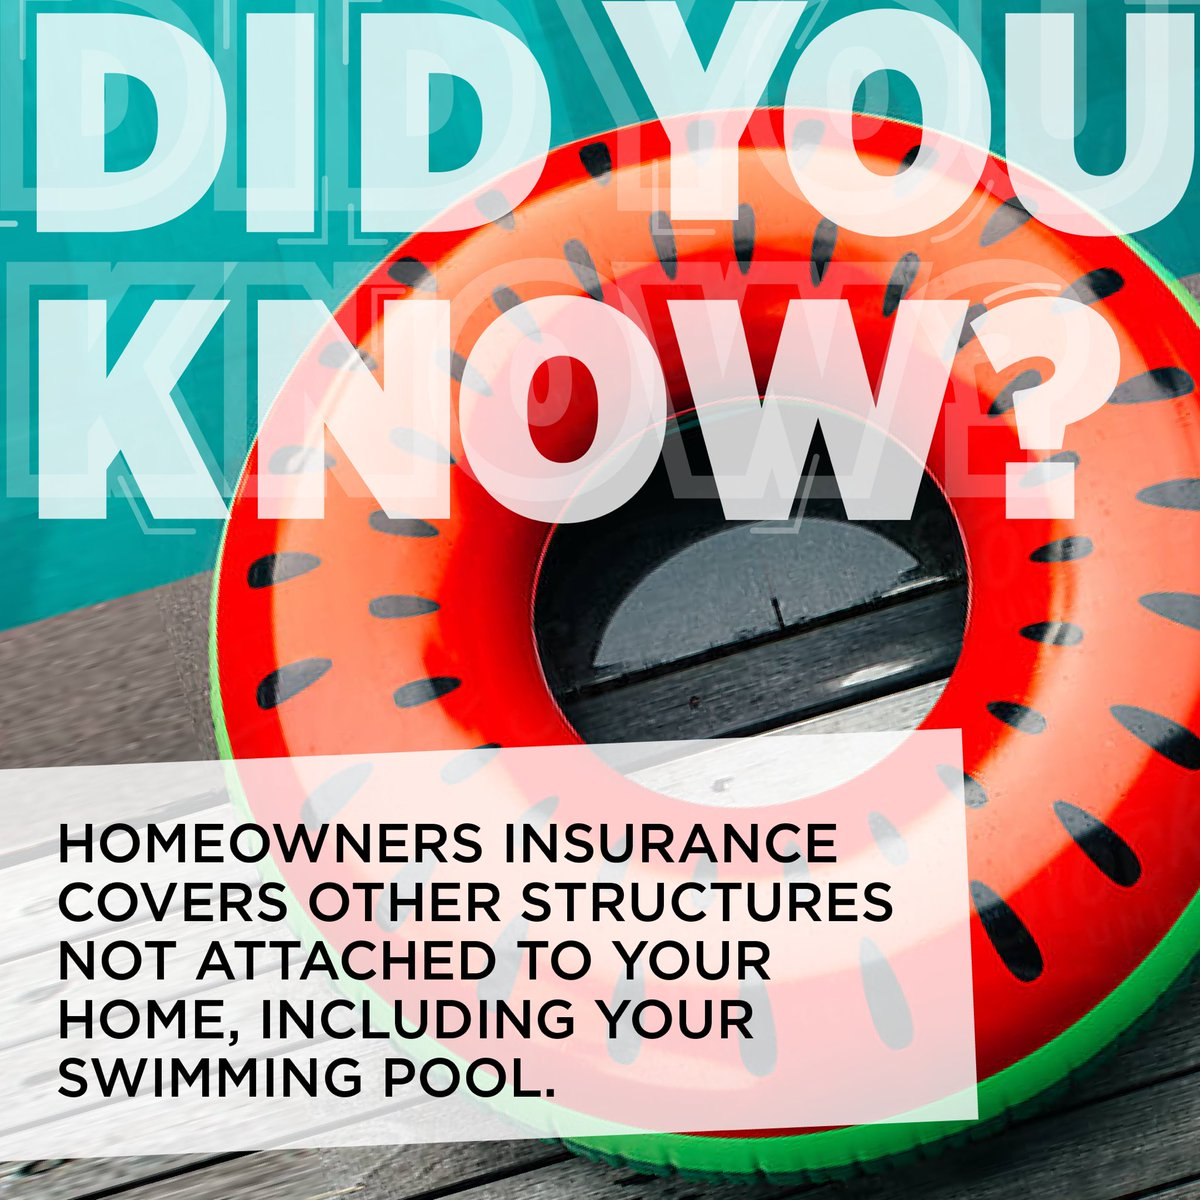 Mercury Home Insurance >> Mercury Insurance On Twitter Homeowners Insurance Covers Other